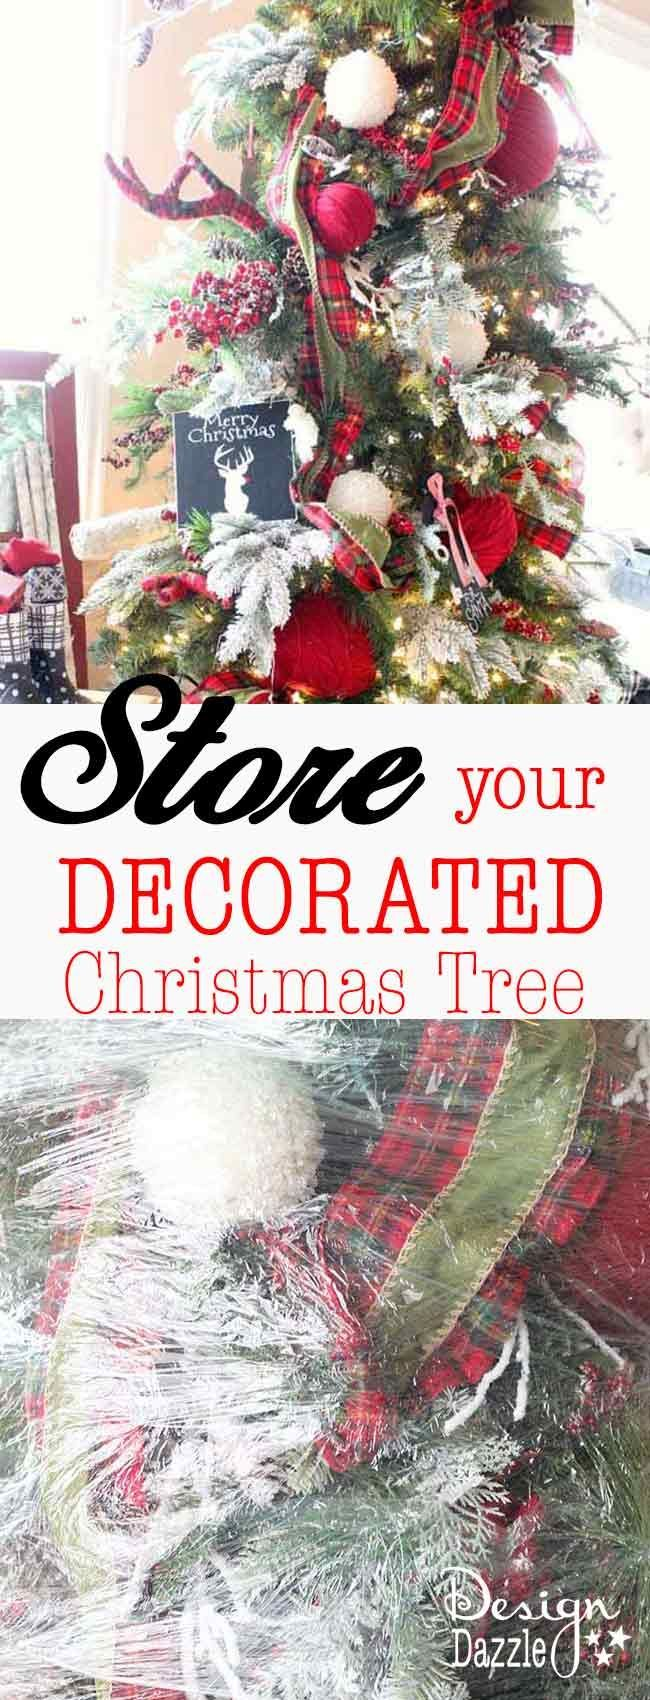 Pull up christmas tree reviews - Save Time And Store Your Decorated Christmas Tree